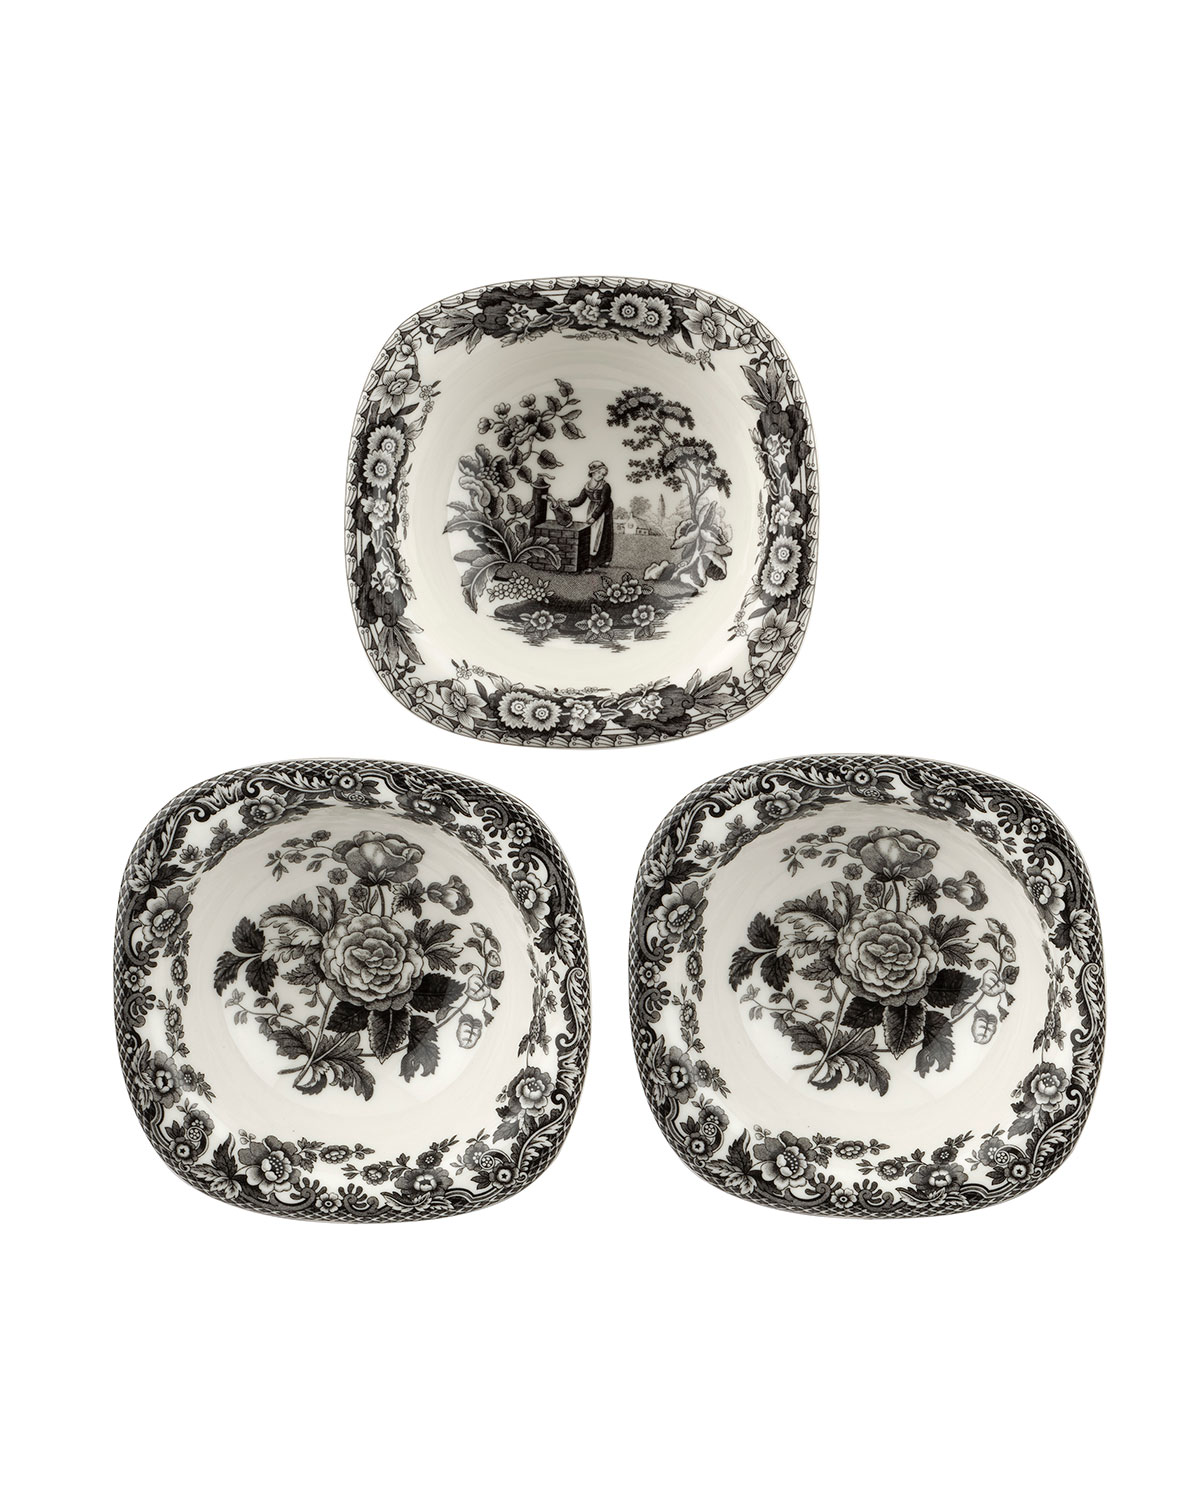 Spode Heritage Dip Dishes, Set of 3